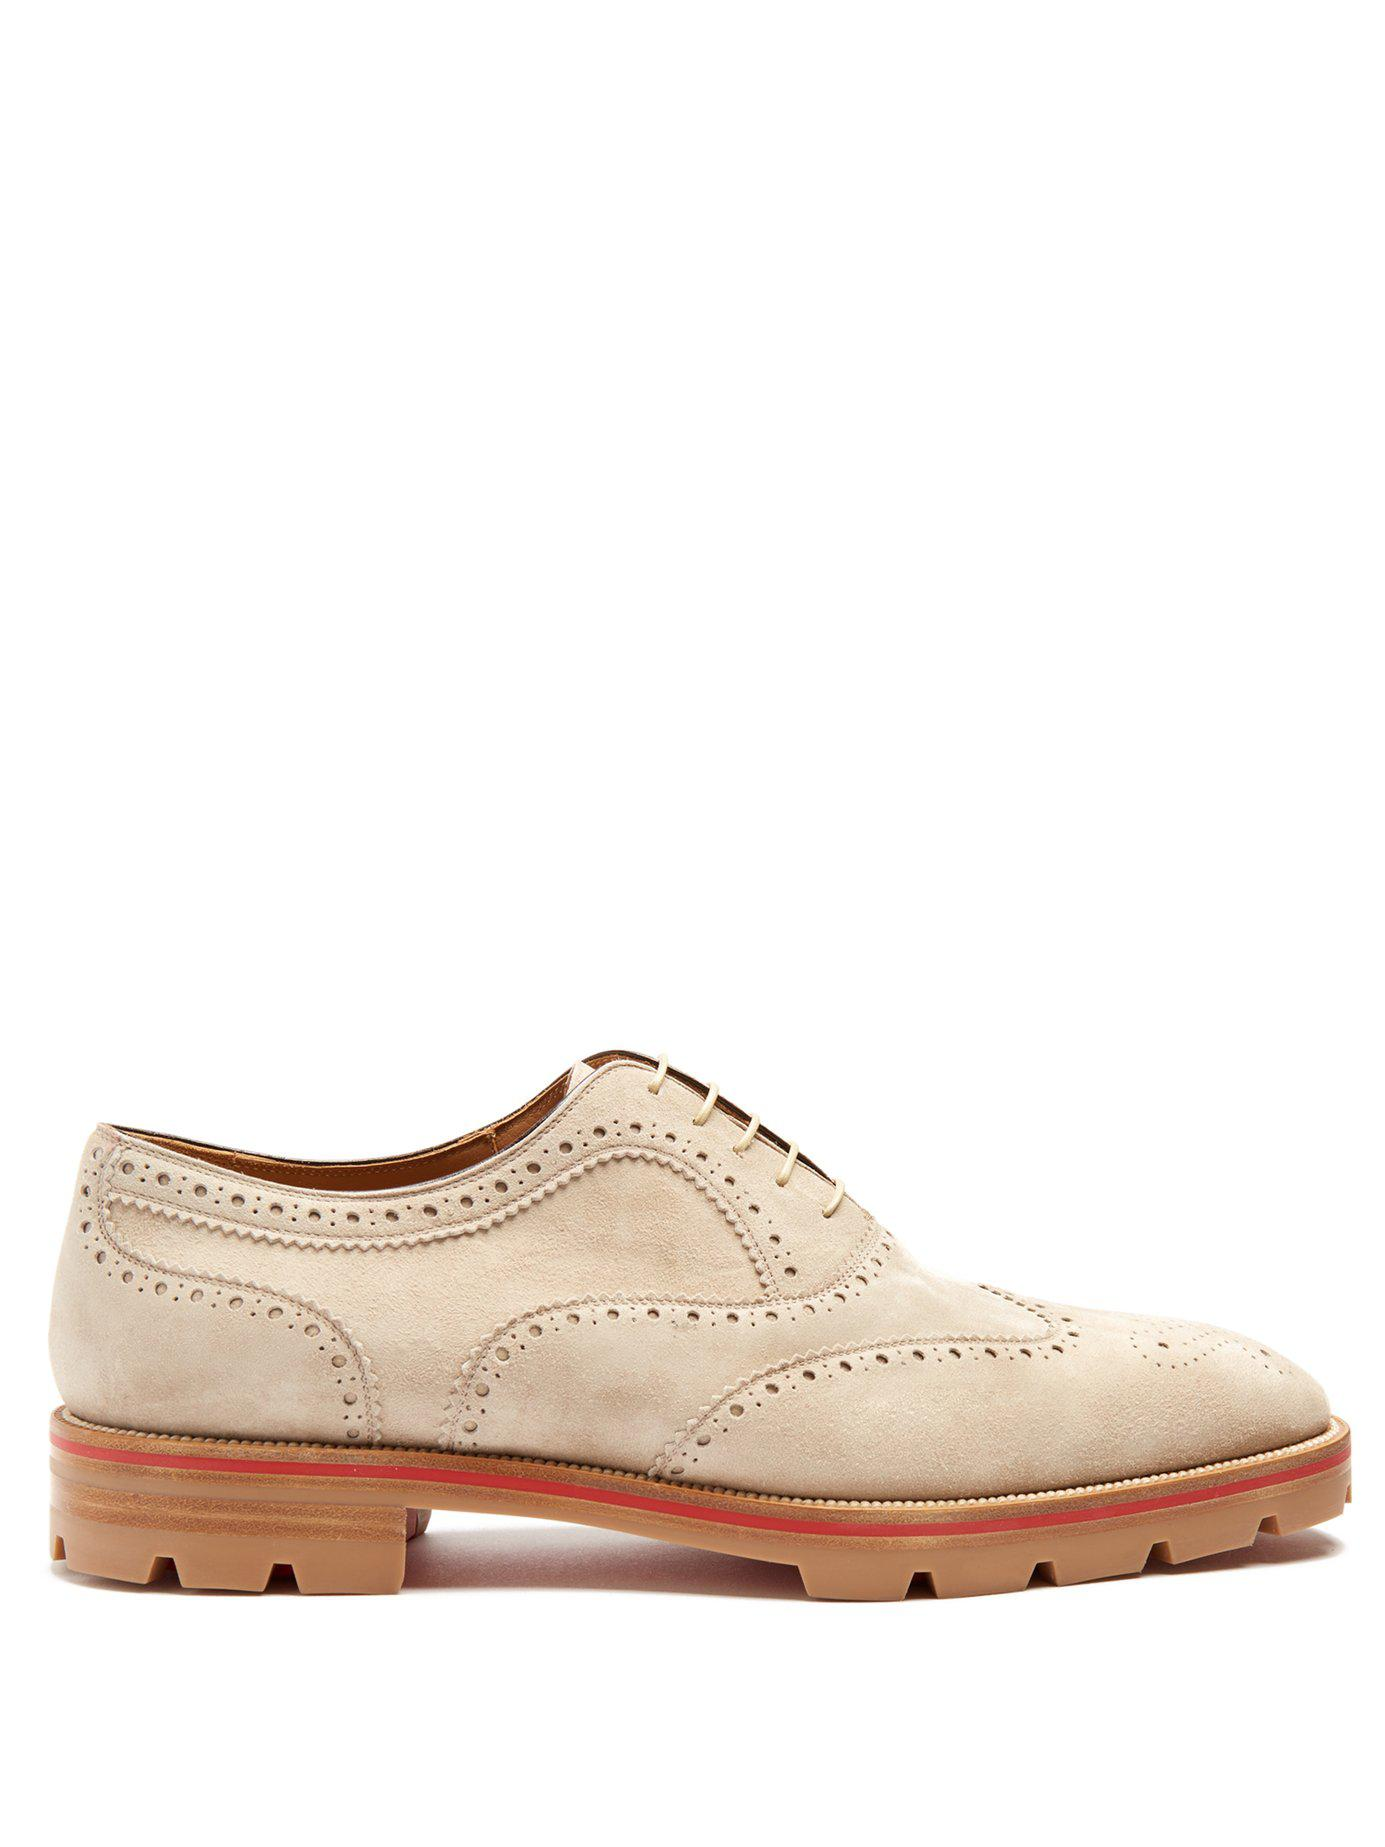 65292276abb6 Christian Louboutin Charlie Suede Oxford Shoes in Natural for Men - Lyst